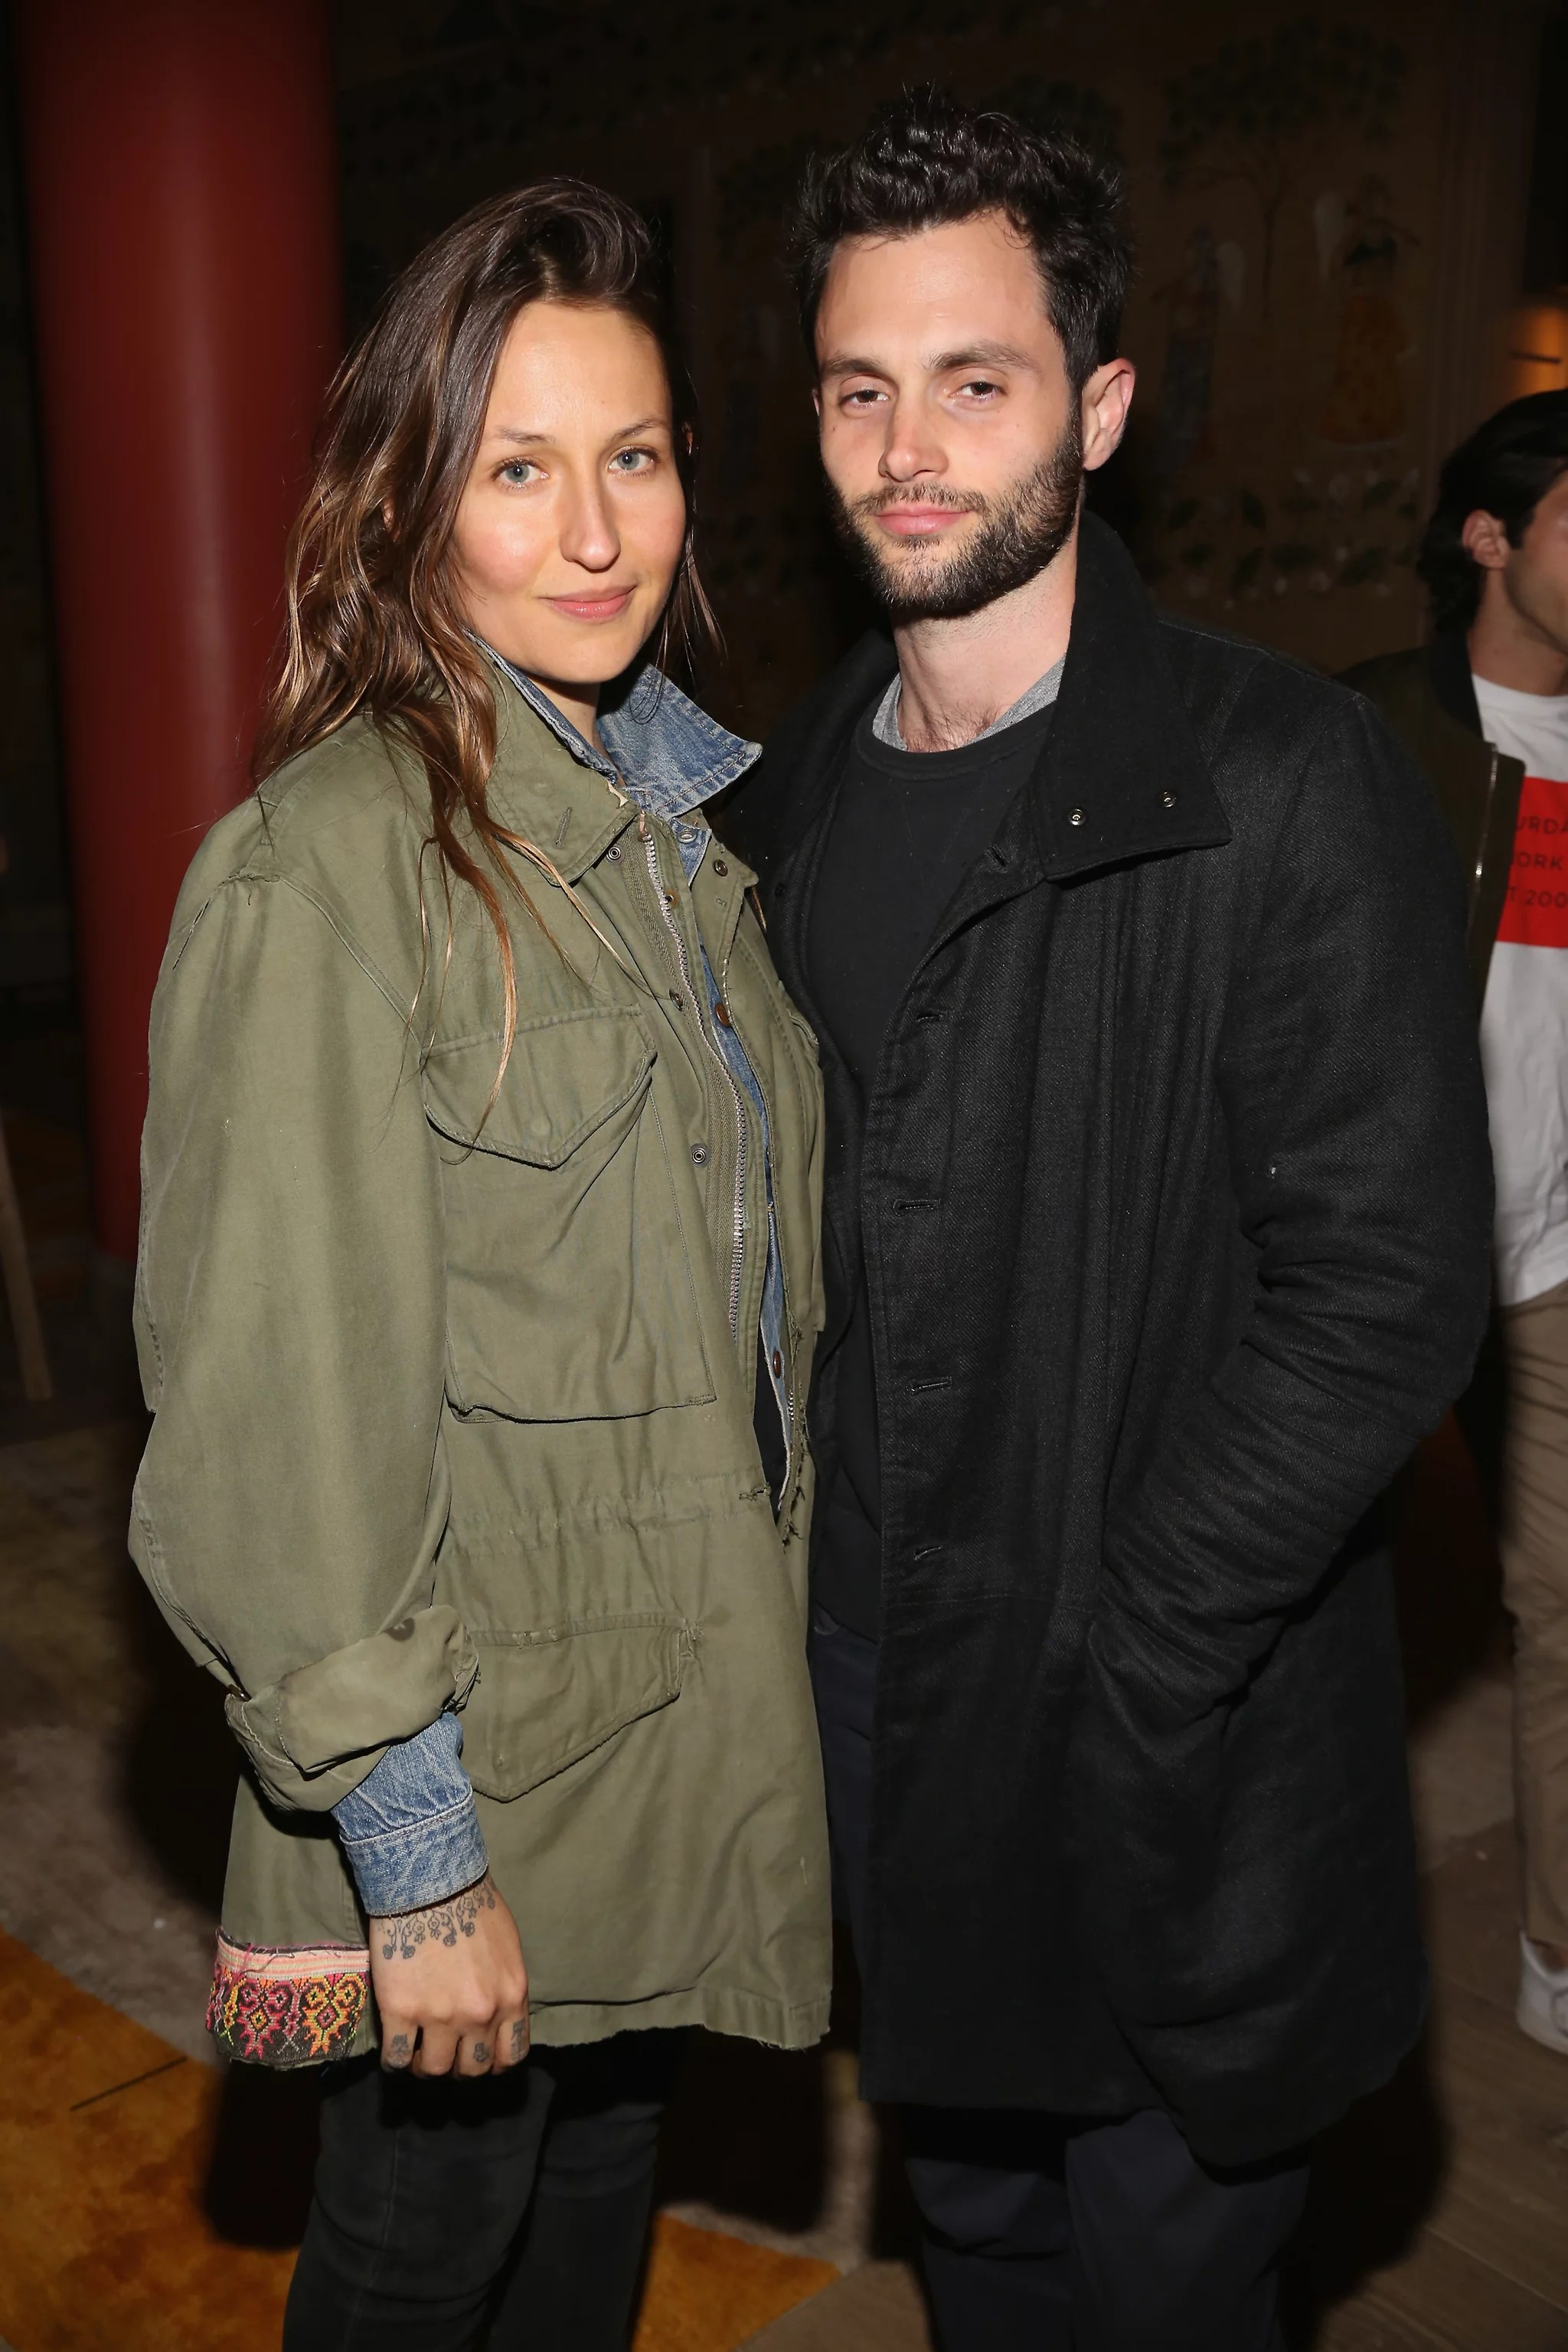 NEW YORK, NY - APRIL 30: Domino Kirke and Penn Badgley attend The Weinstein Company and Lyft host a special screening of